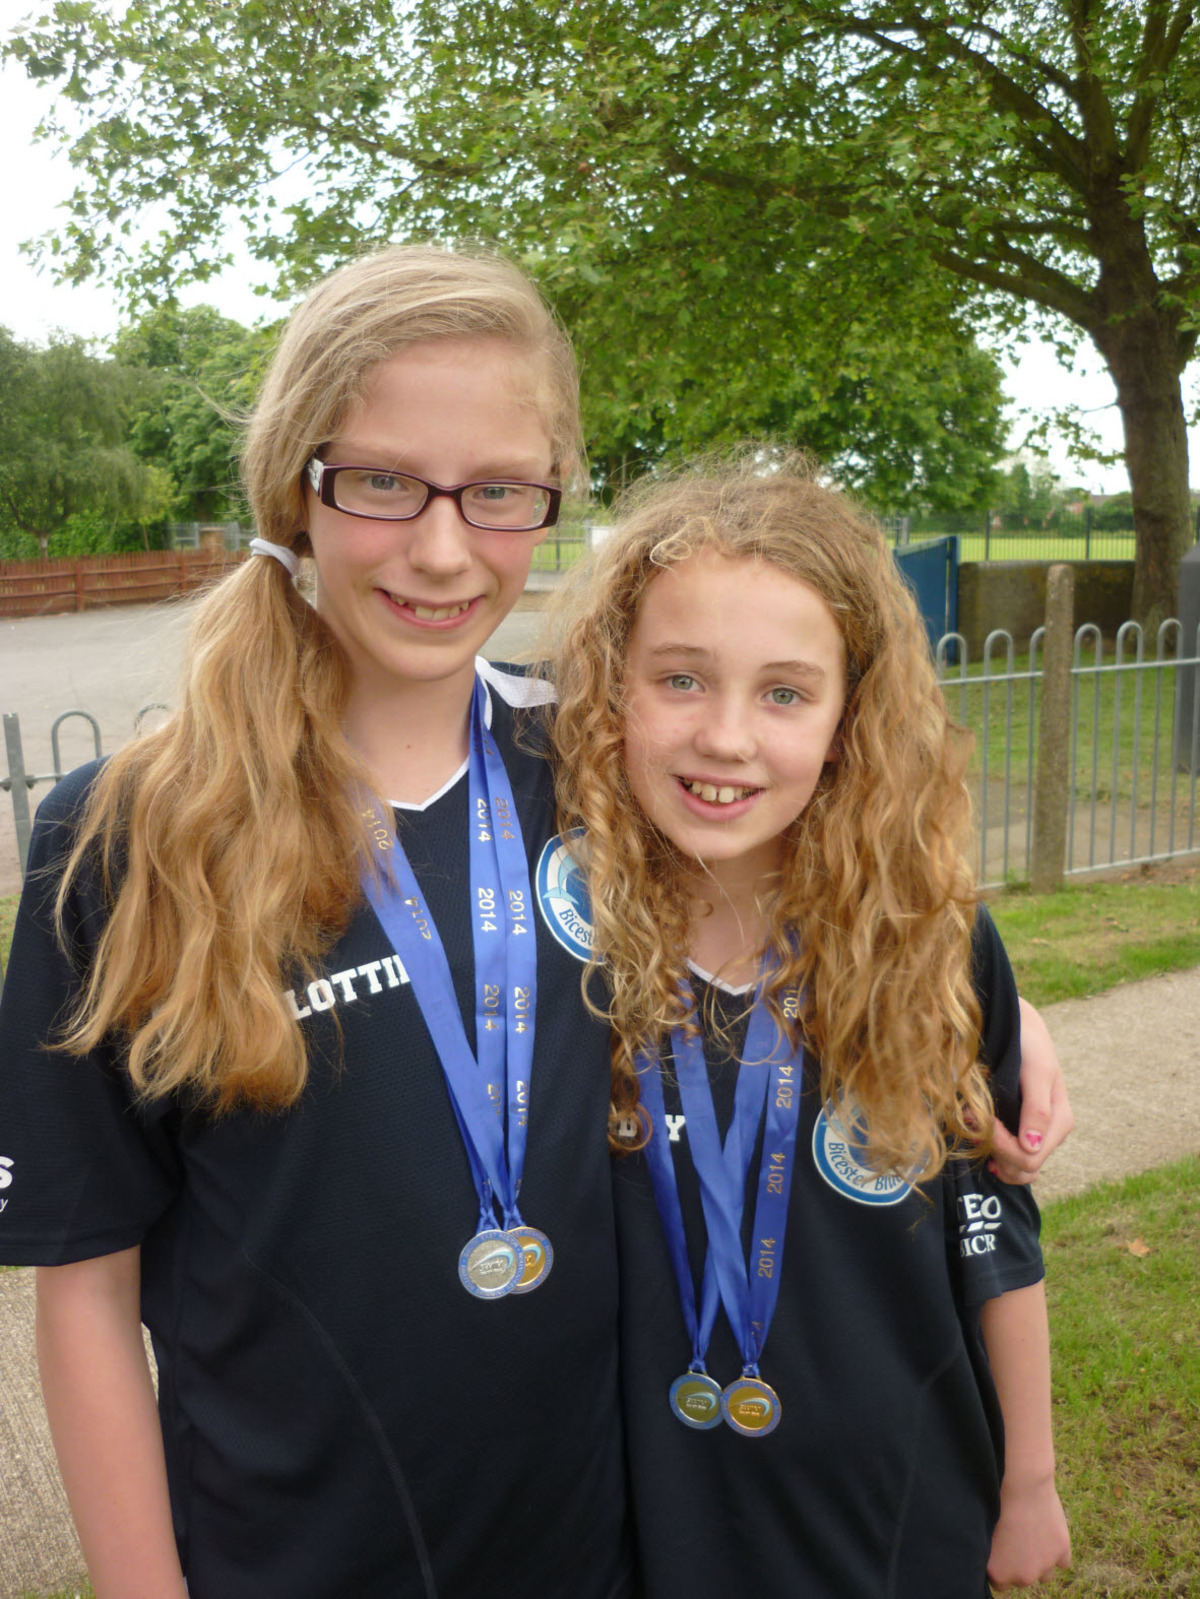 Bicester Blue Fins' double medallists Lottie Wynne-Jones (left) and Maddy Powell